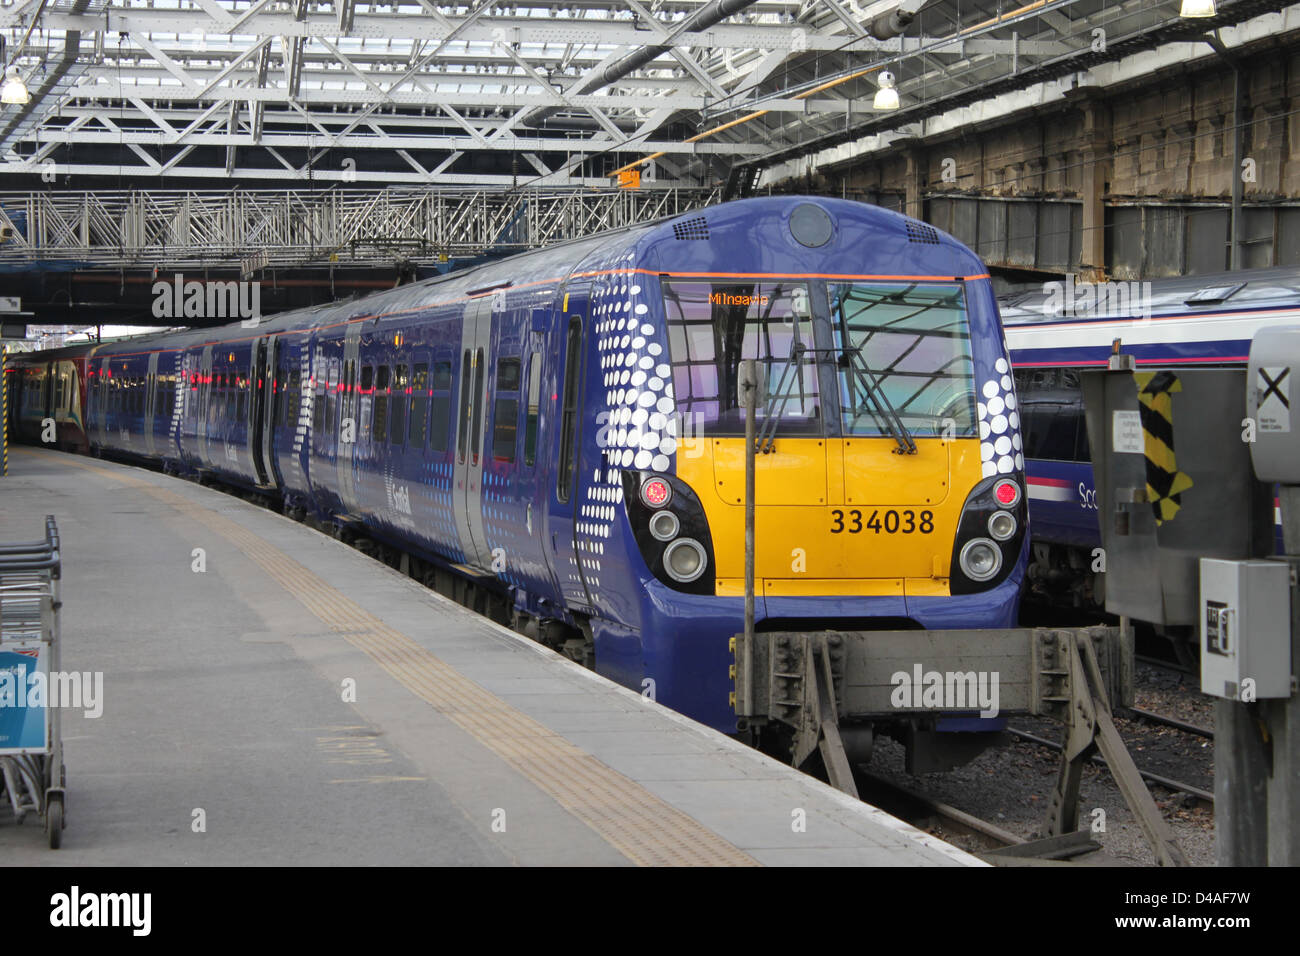 Class 334 Scotrail electric multiple unit (EMU) at a platform in Edinburgh Waverley station with a service to Milngavie. - Stock Image